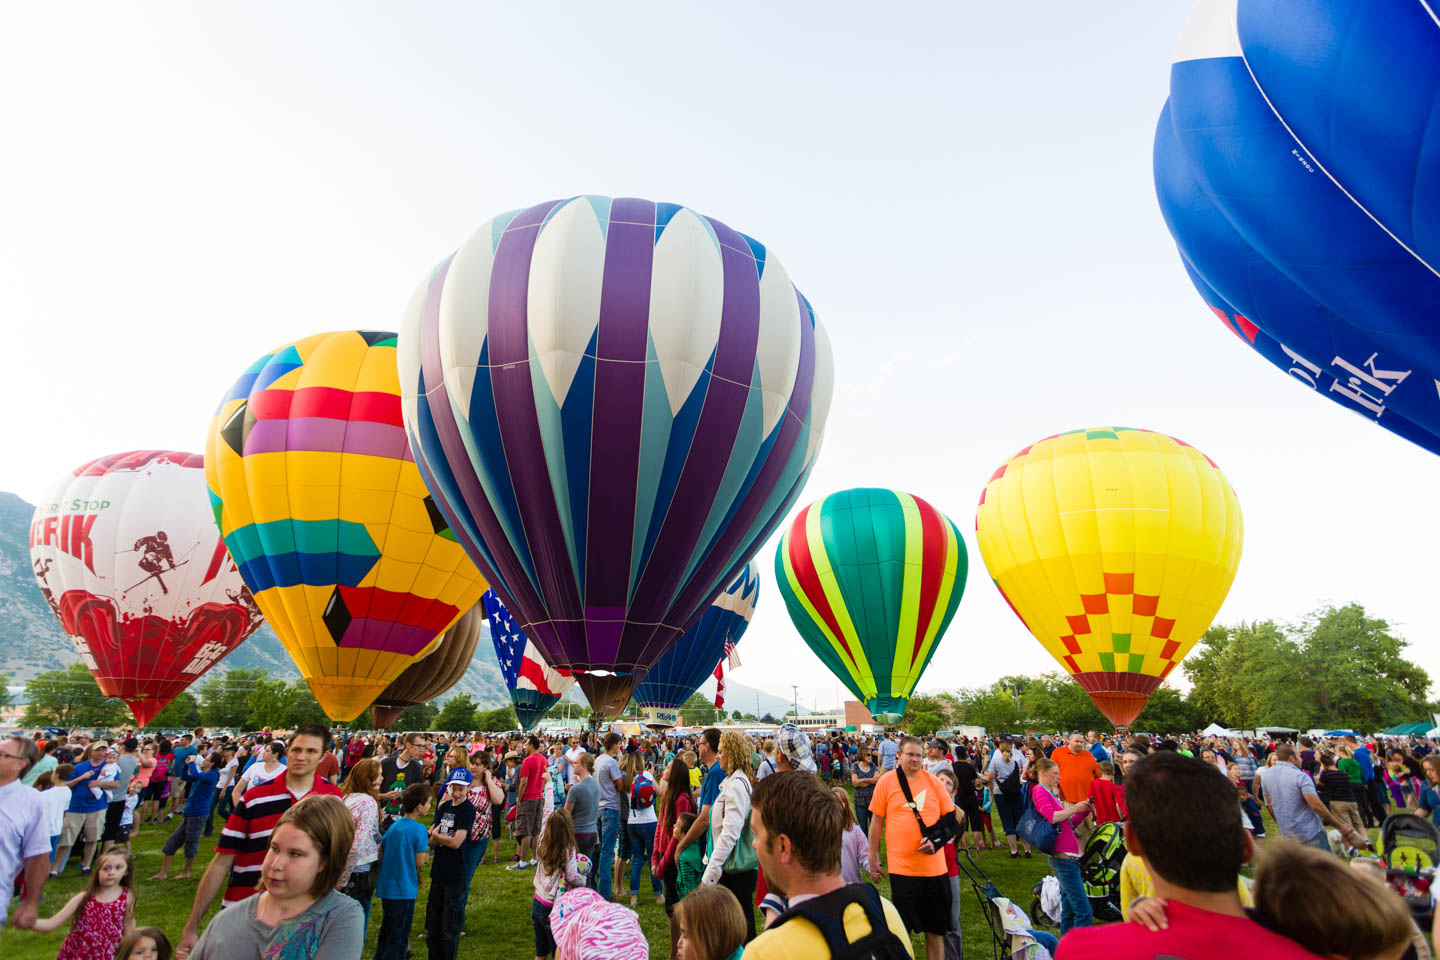 People tour the hot air balloons